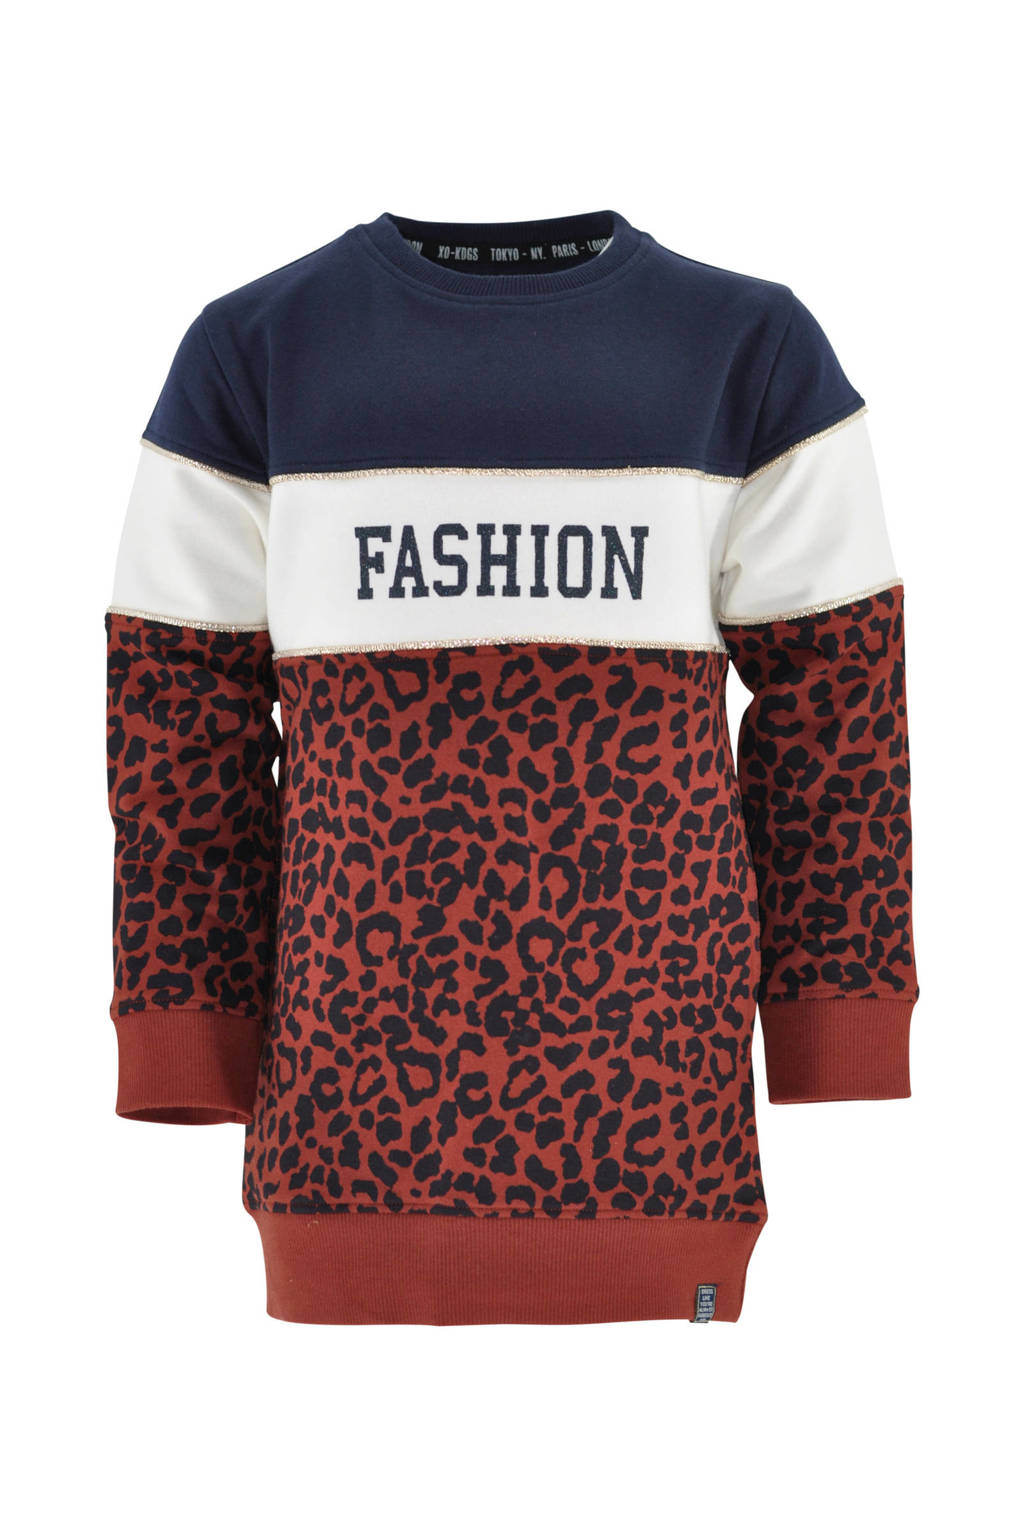 born to be famous. sweatjurk Gitta met panterprint donkerblauw/brique/wit, Donkerblauw/brique/wit